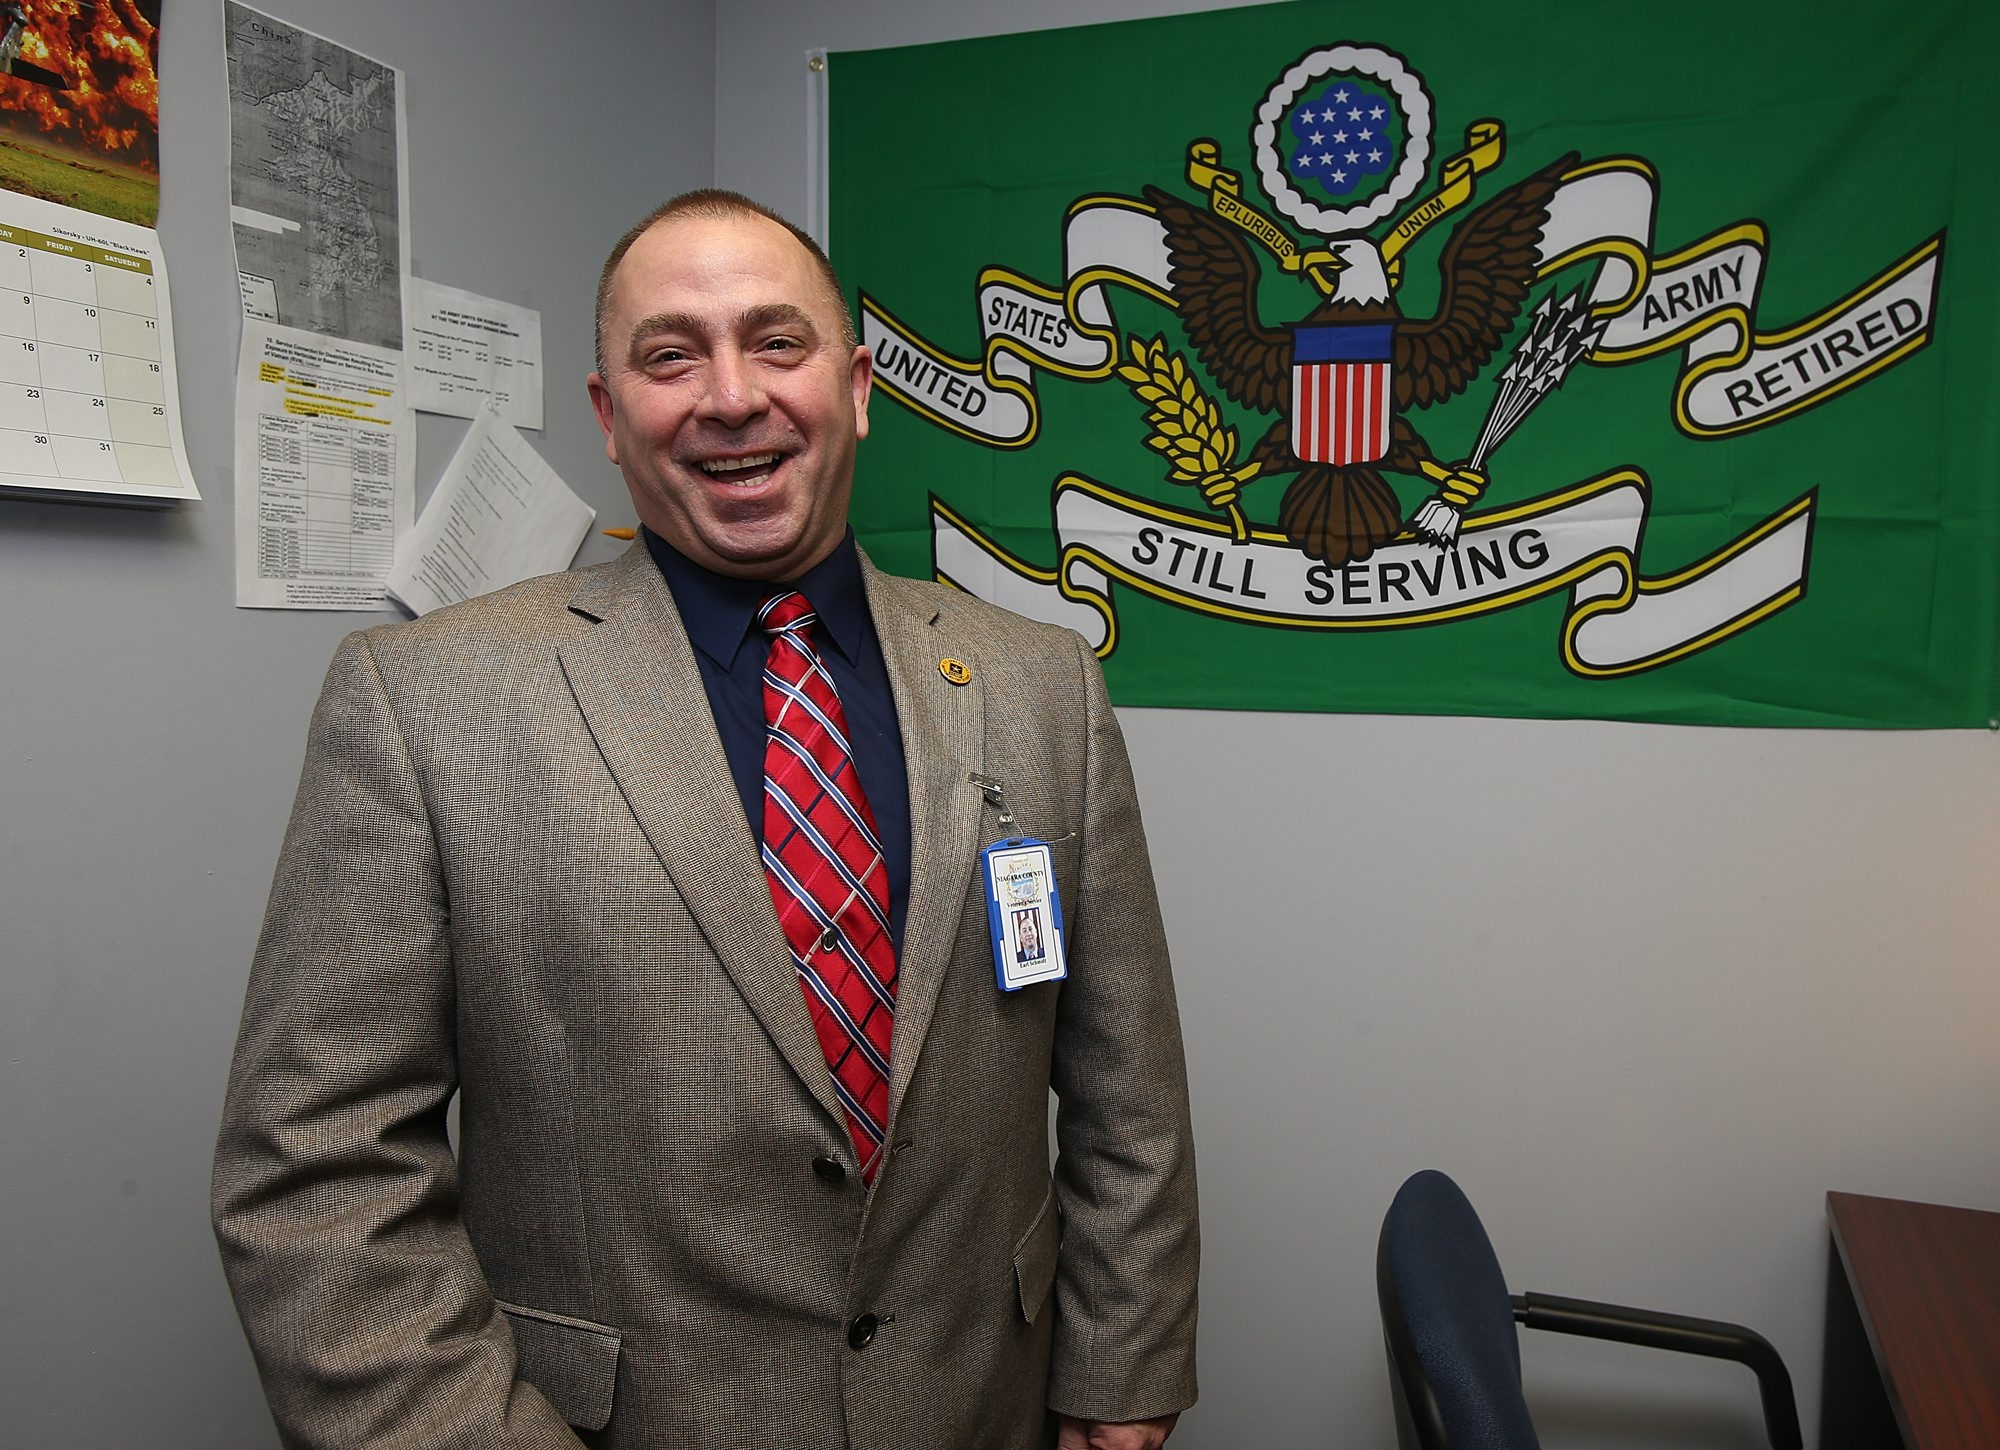 After 23 years in uniform, including two wars, Earl Schmidt serves on home front as Niagara County veterans service officer in Lockport.